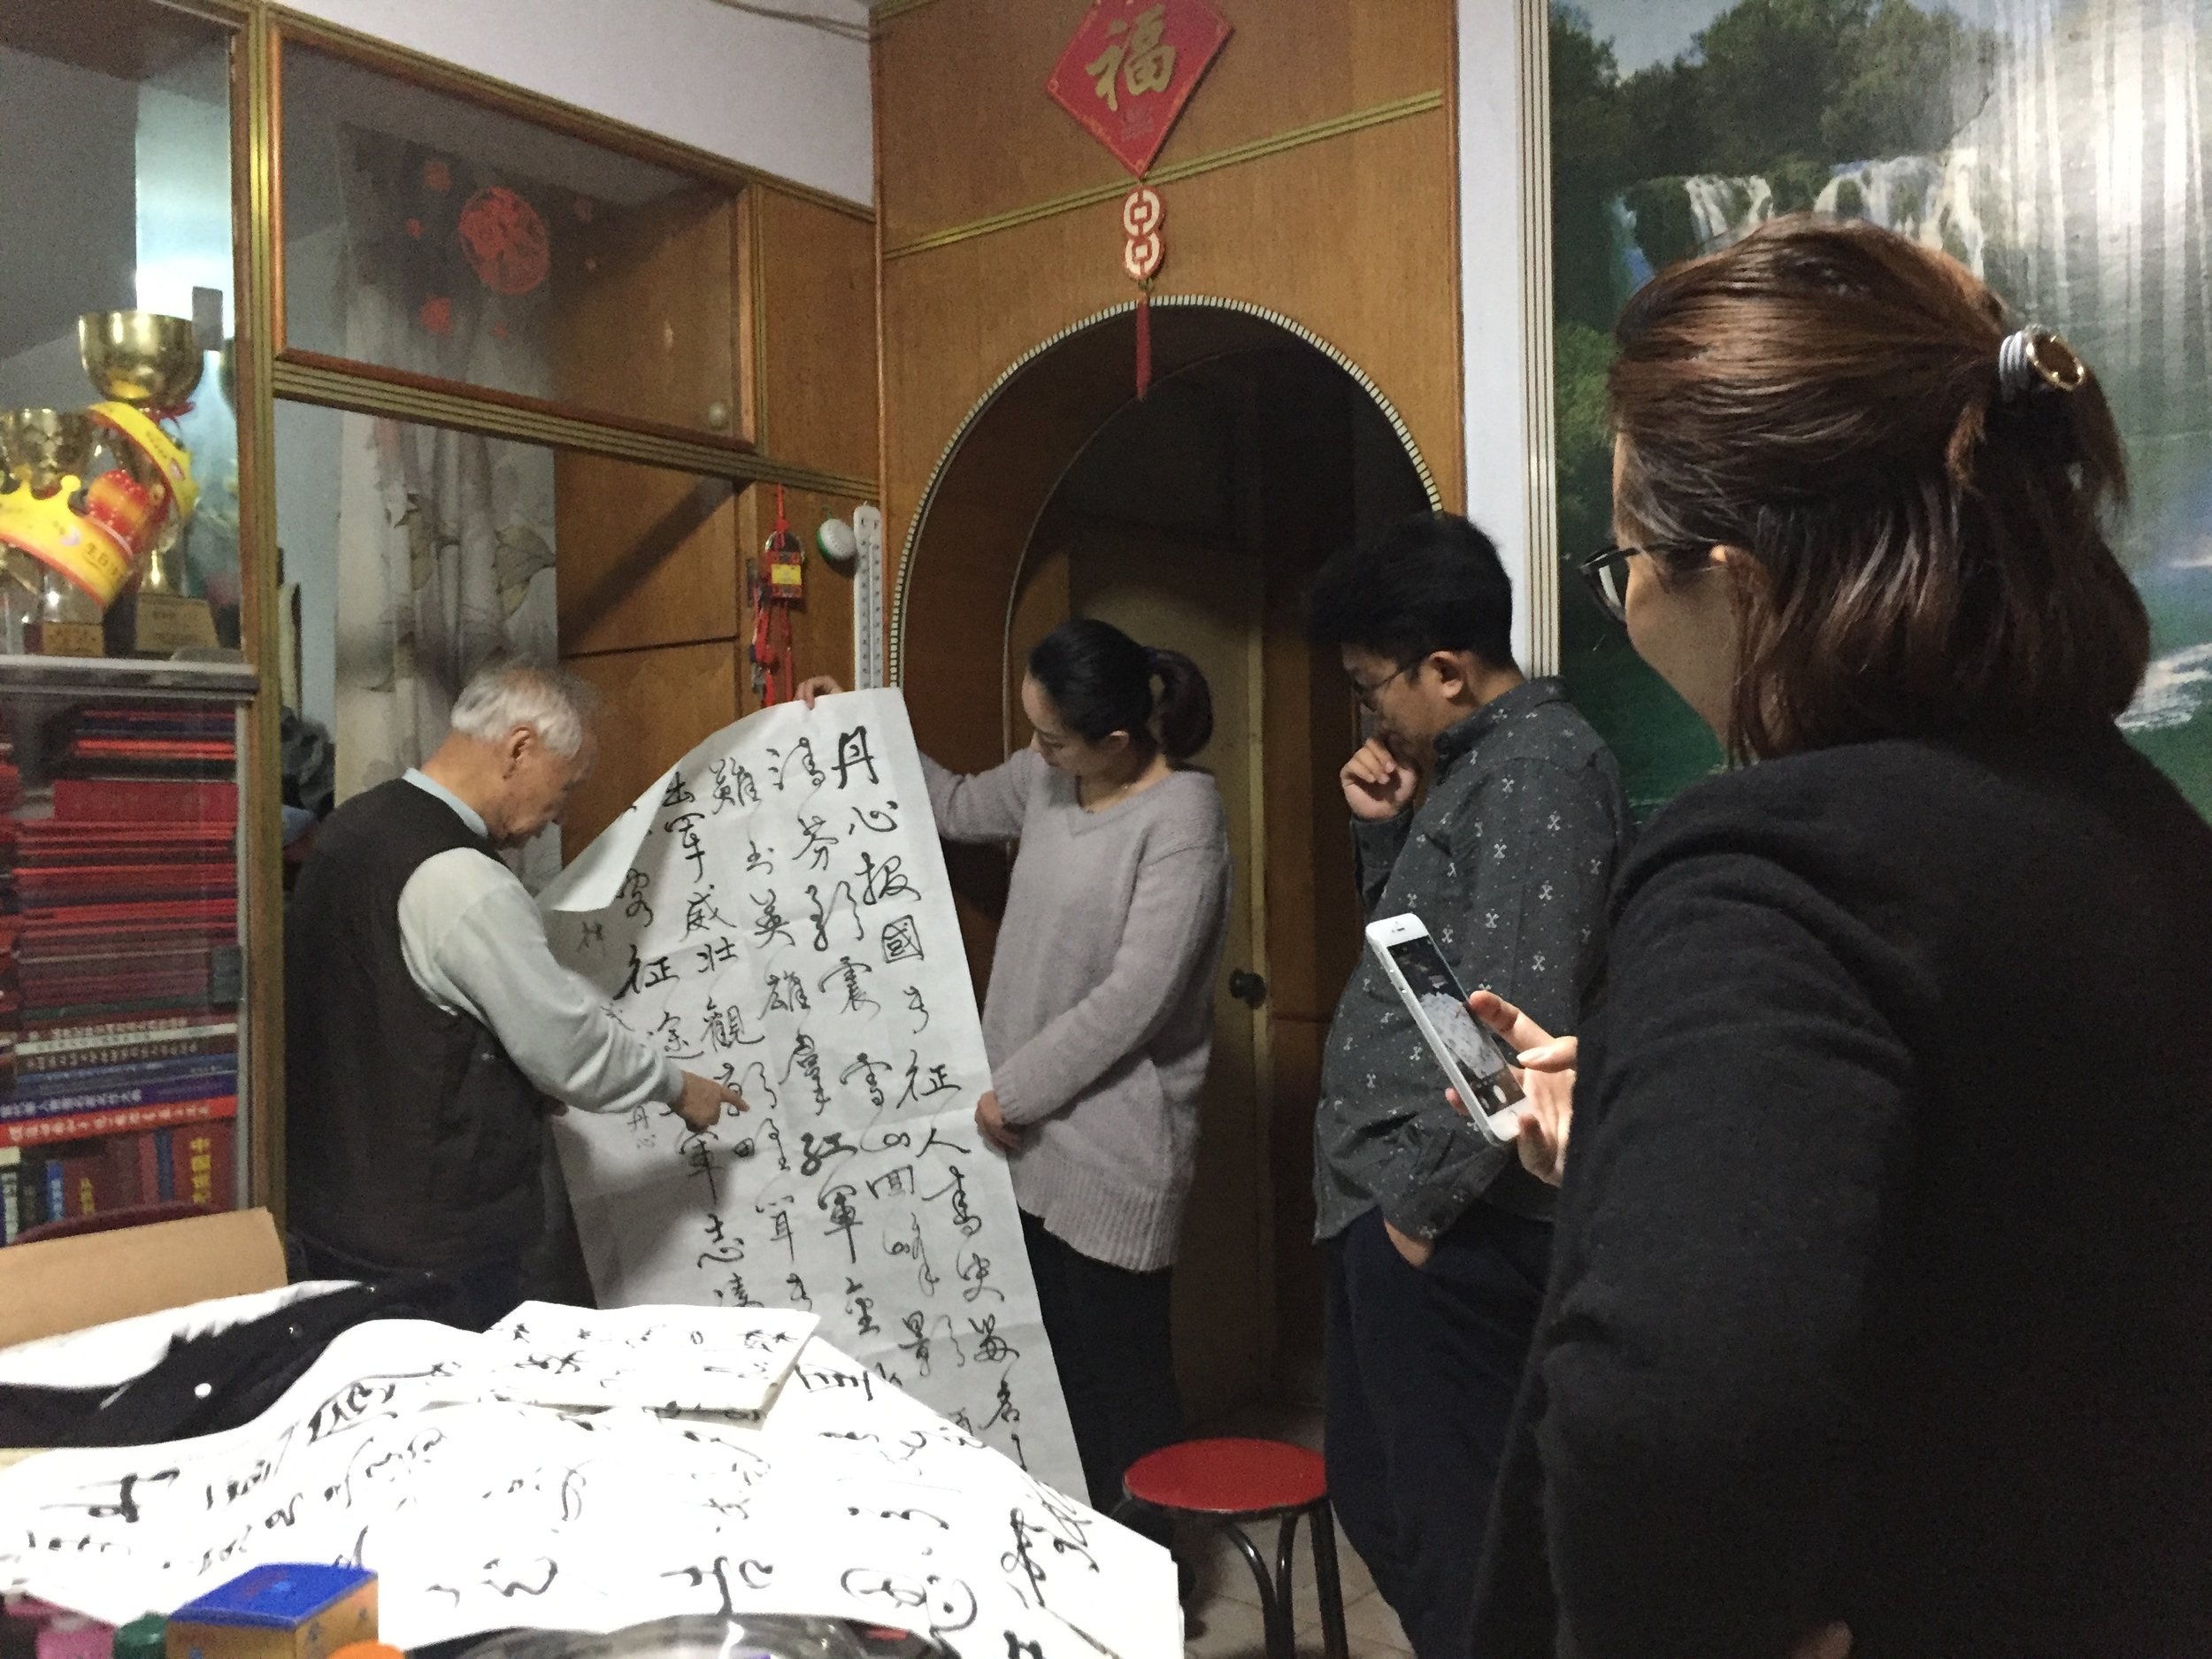 KWAN YEN SALON - A series of salon sessions uncovering the heritage and potentials inherent within an urban revitalisation project in Yantai, Shandong Provence.